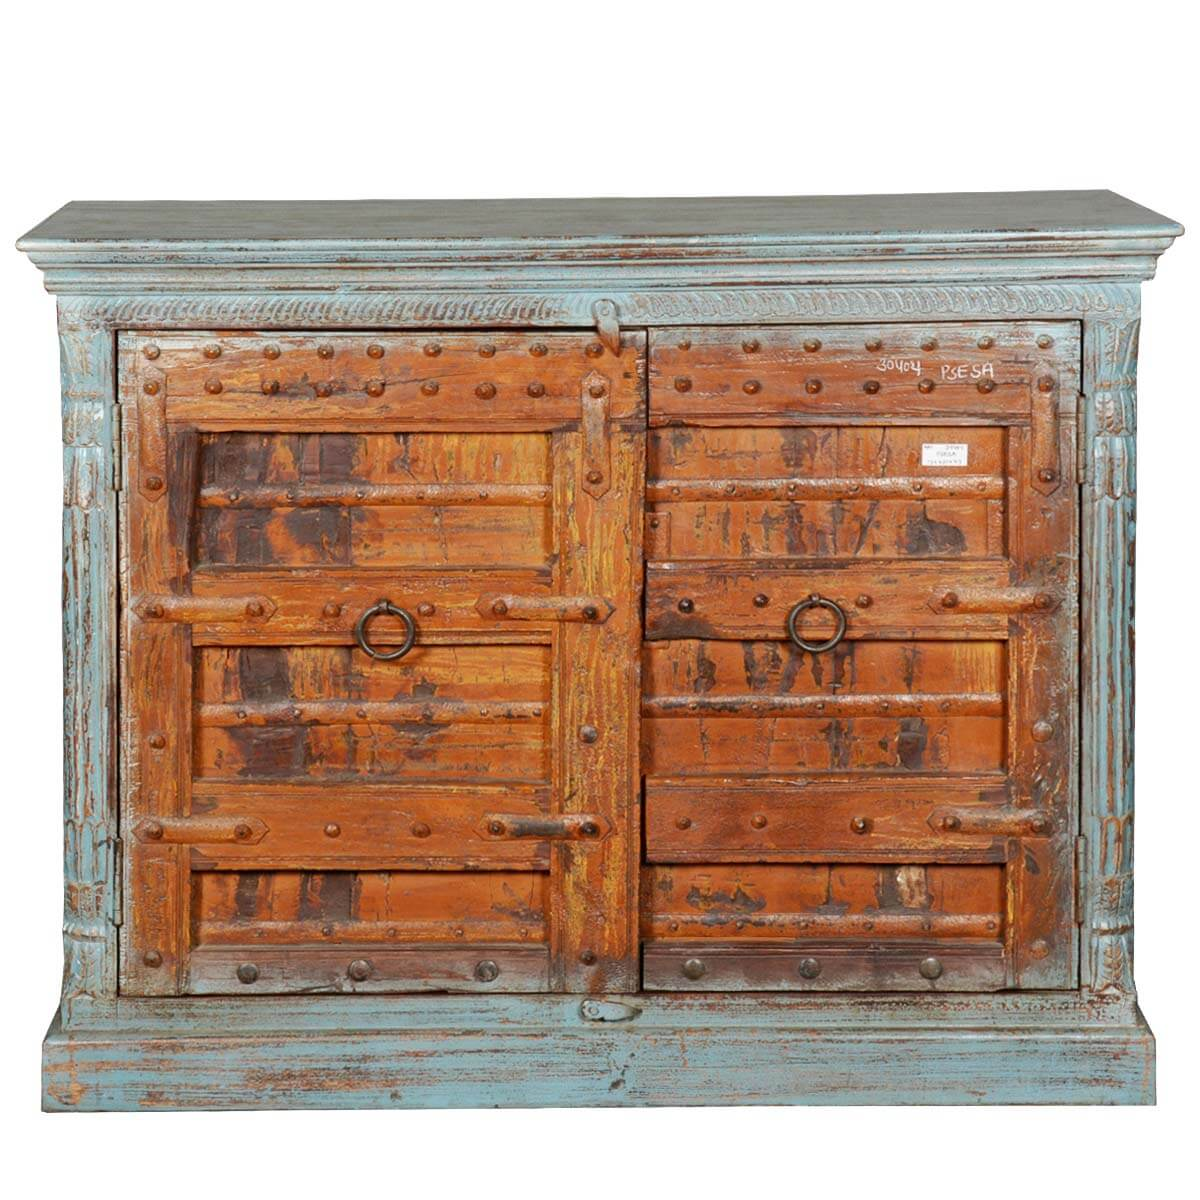 Marvelous photograph of  Collection Rustic White Washed Reclaimed Wood Buffet Sideboard Cabinet with #9C5B2F color and 1200x1200 pixels